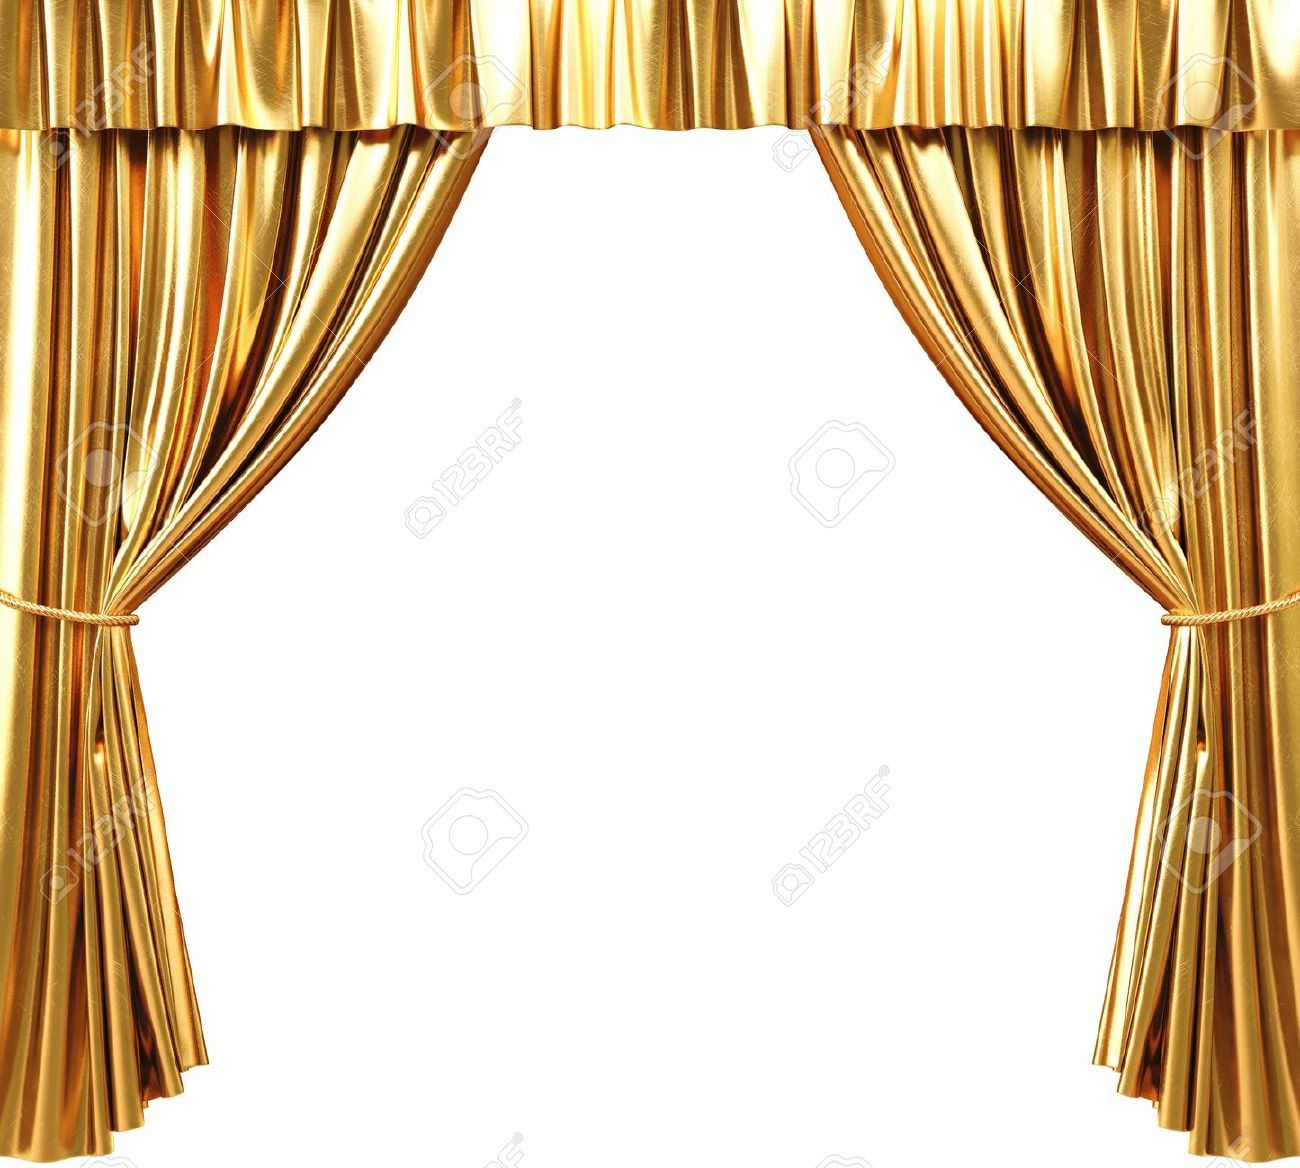 Blue stage curtains blue stage curtain vector free vector in - Theater Curtain Golden Theatrical Curtain 3d Image